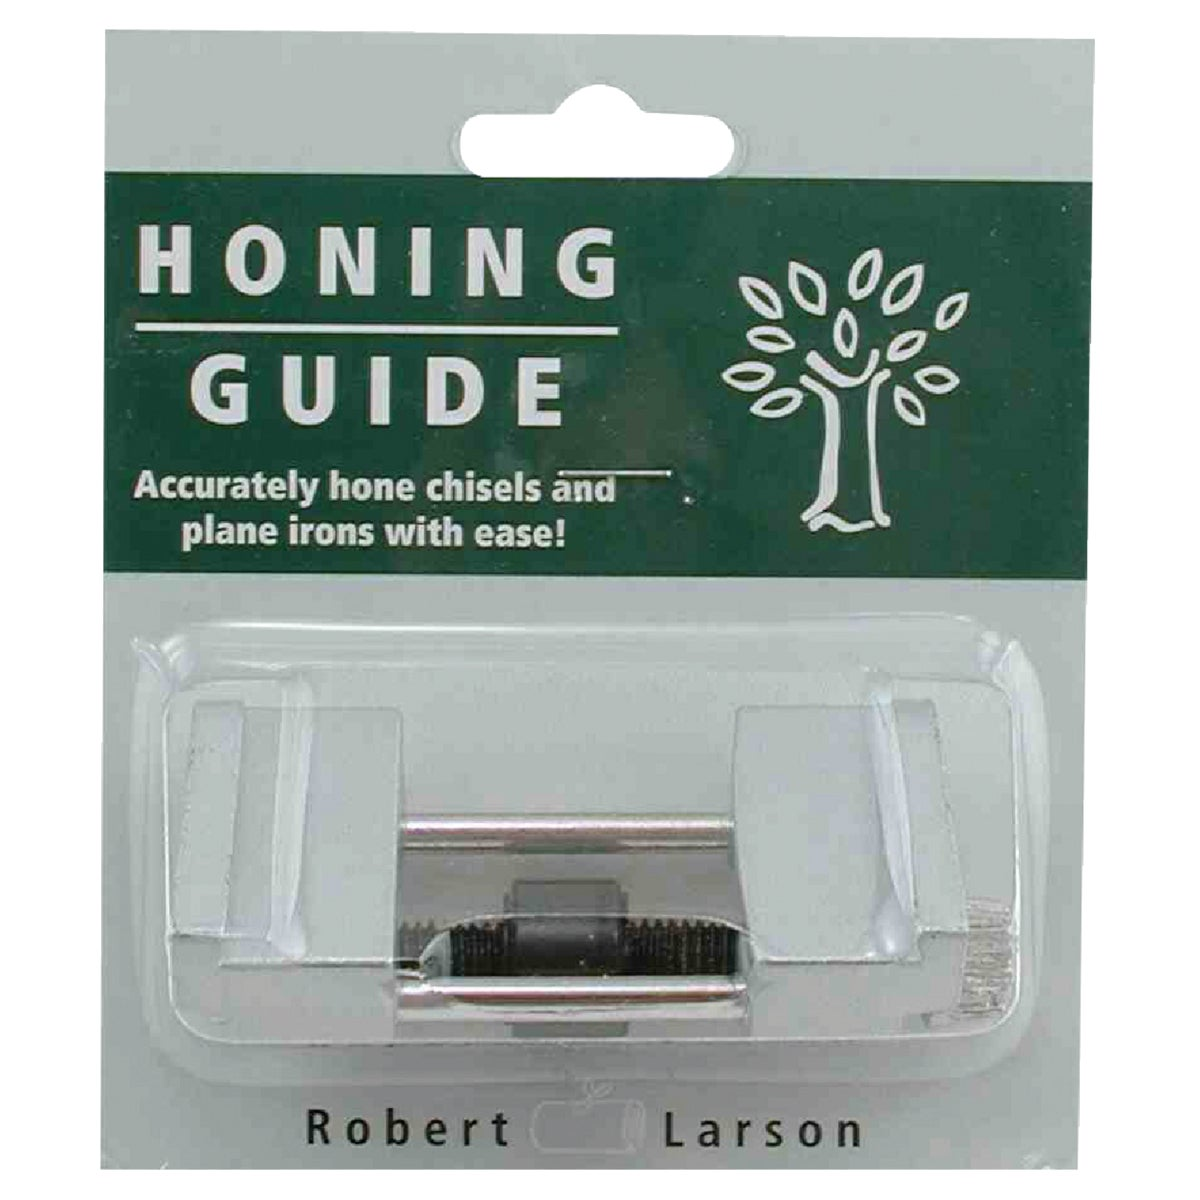 HONING GUIDE - 800-1800 by Robert Larson